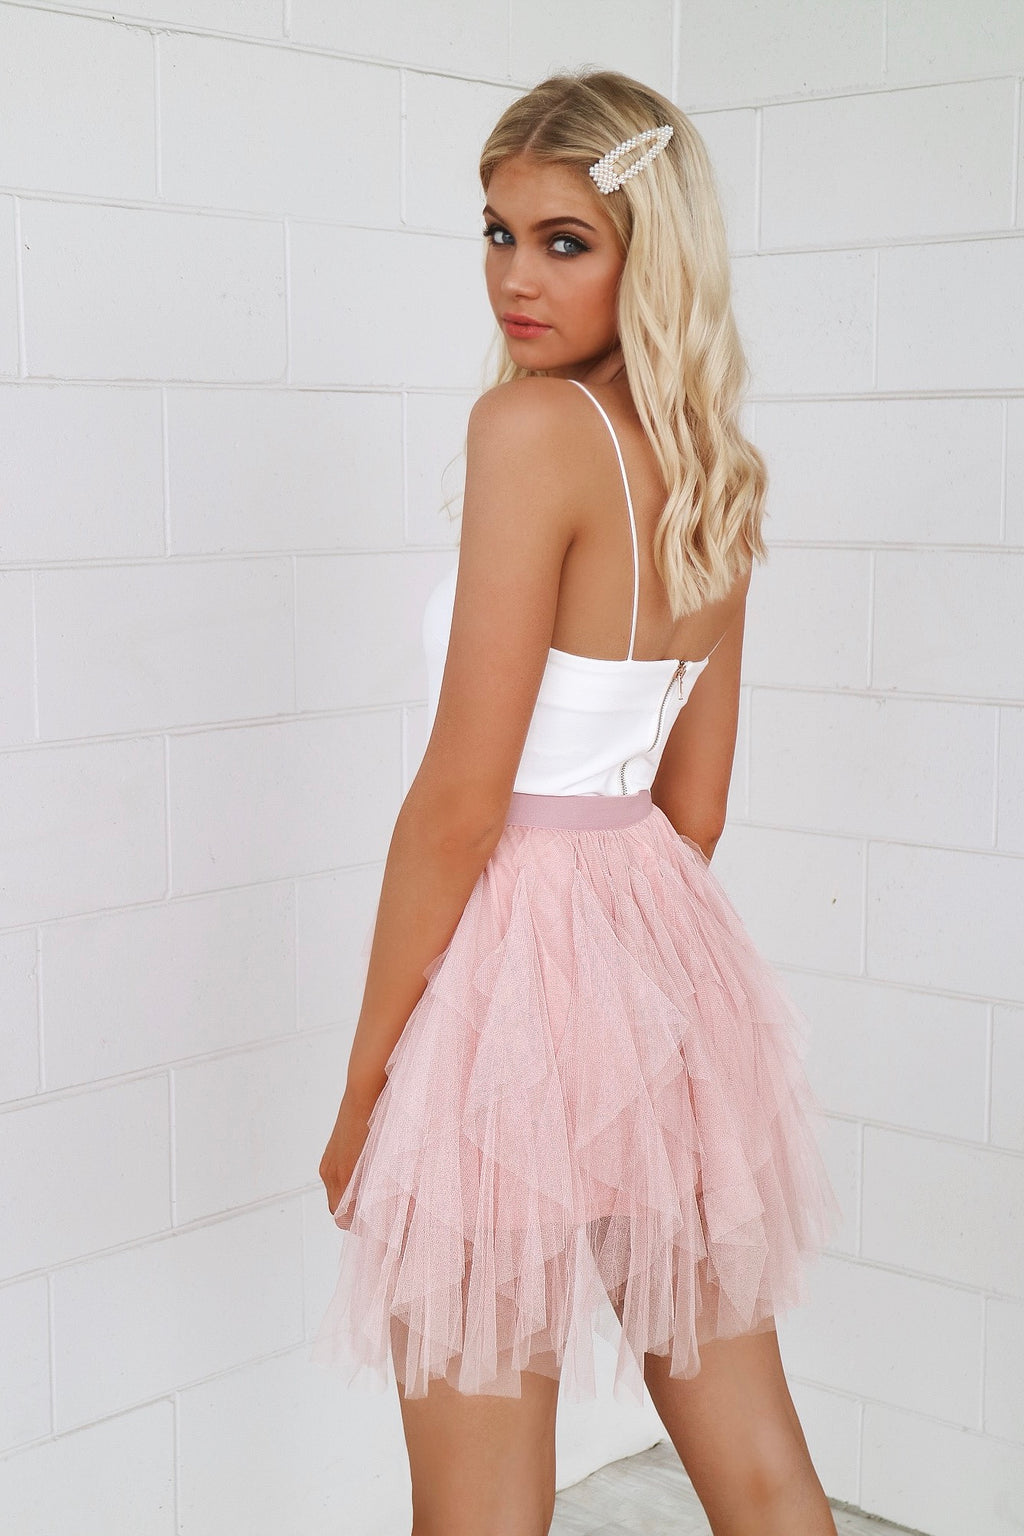 Cupid Tulle Skirt - Blush - Runway Goddess